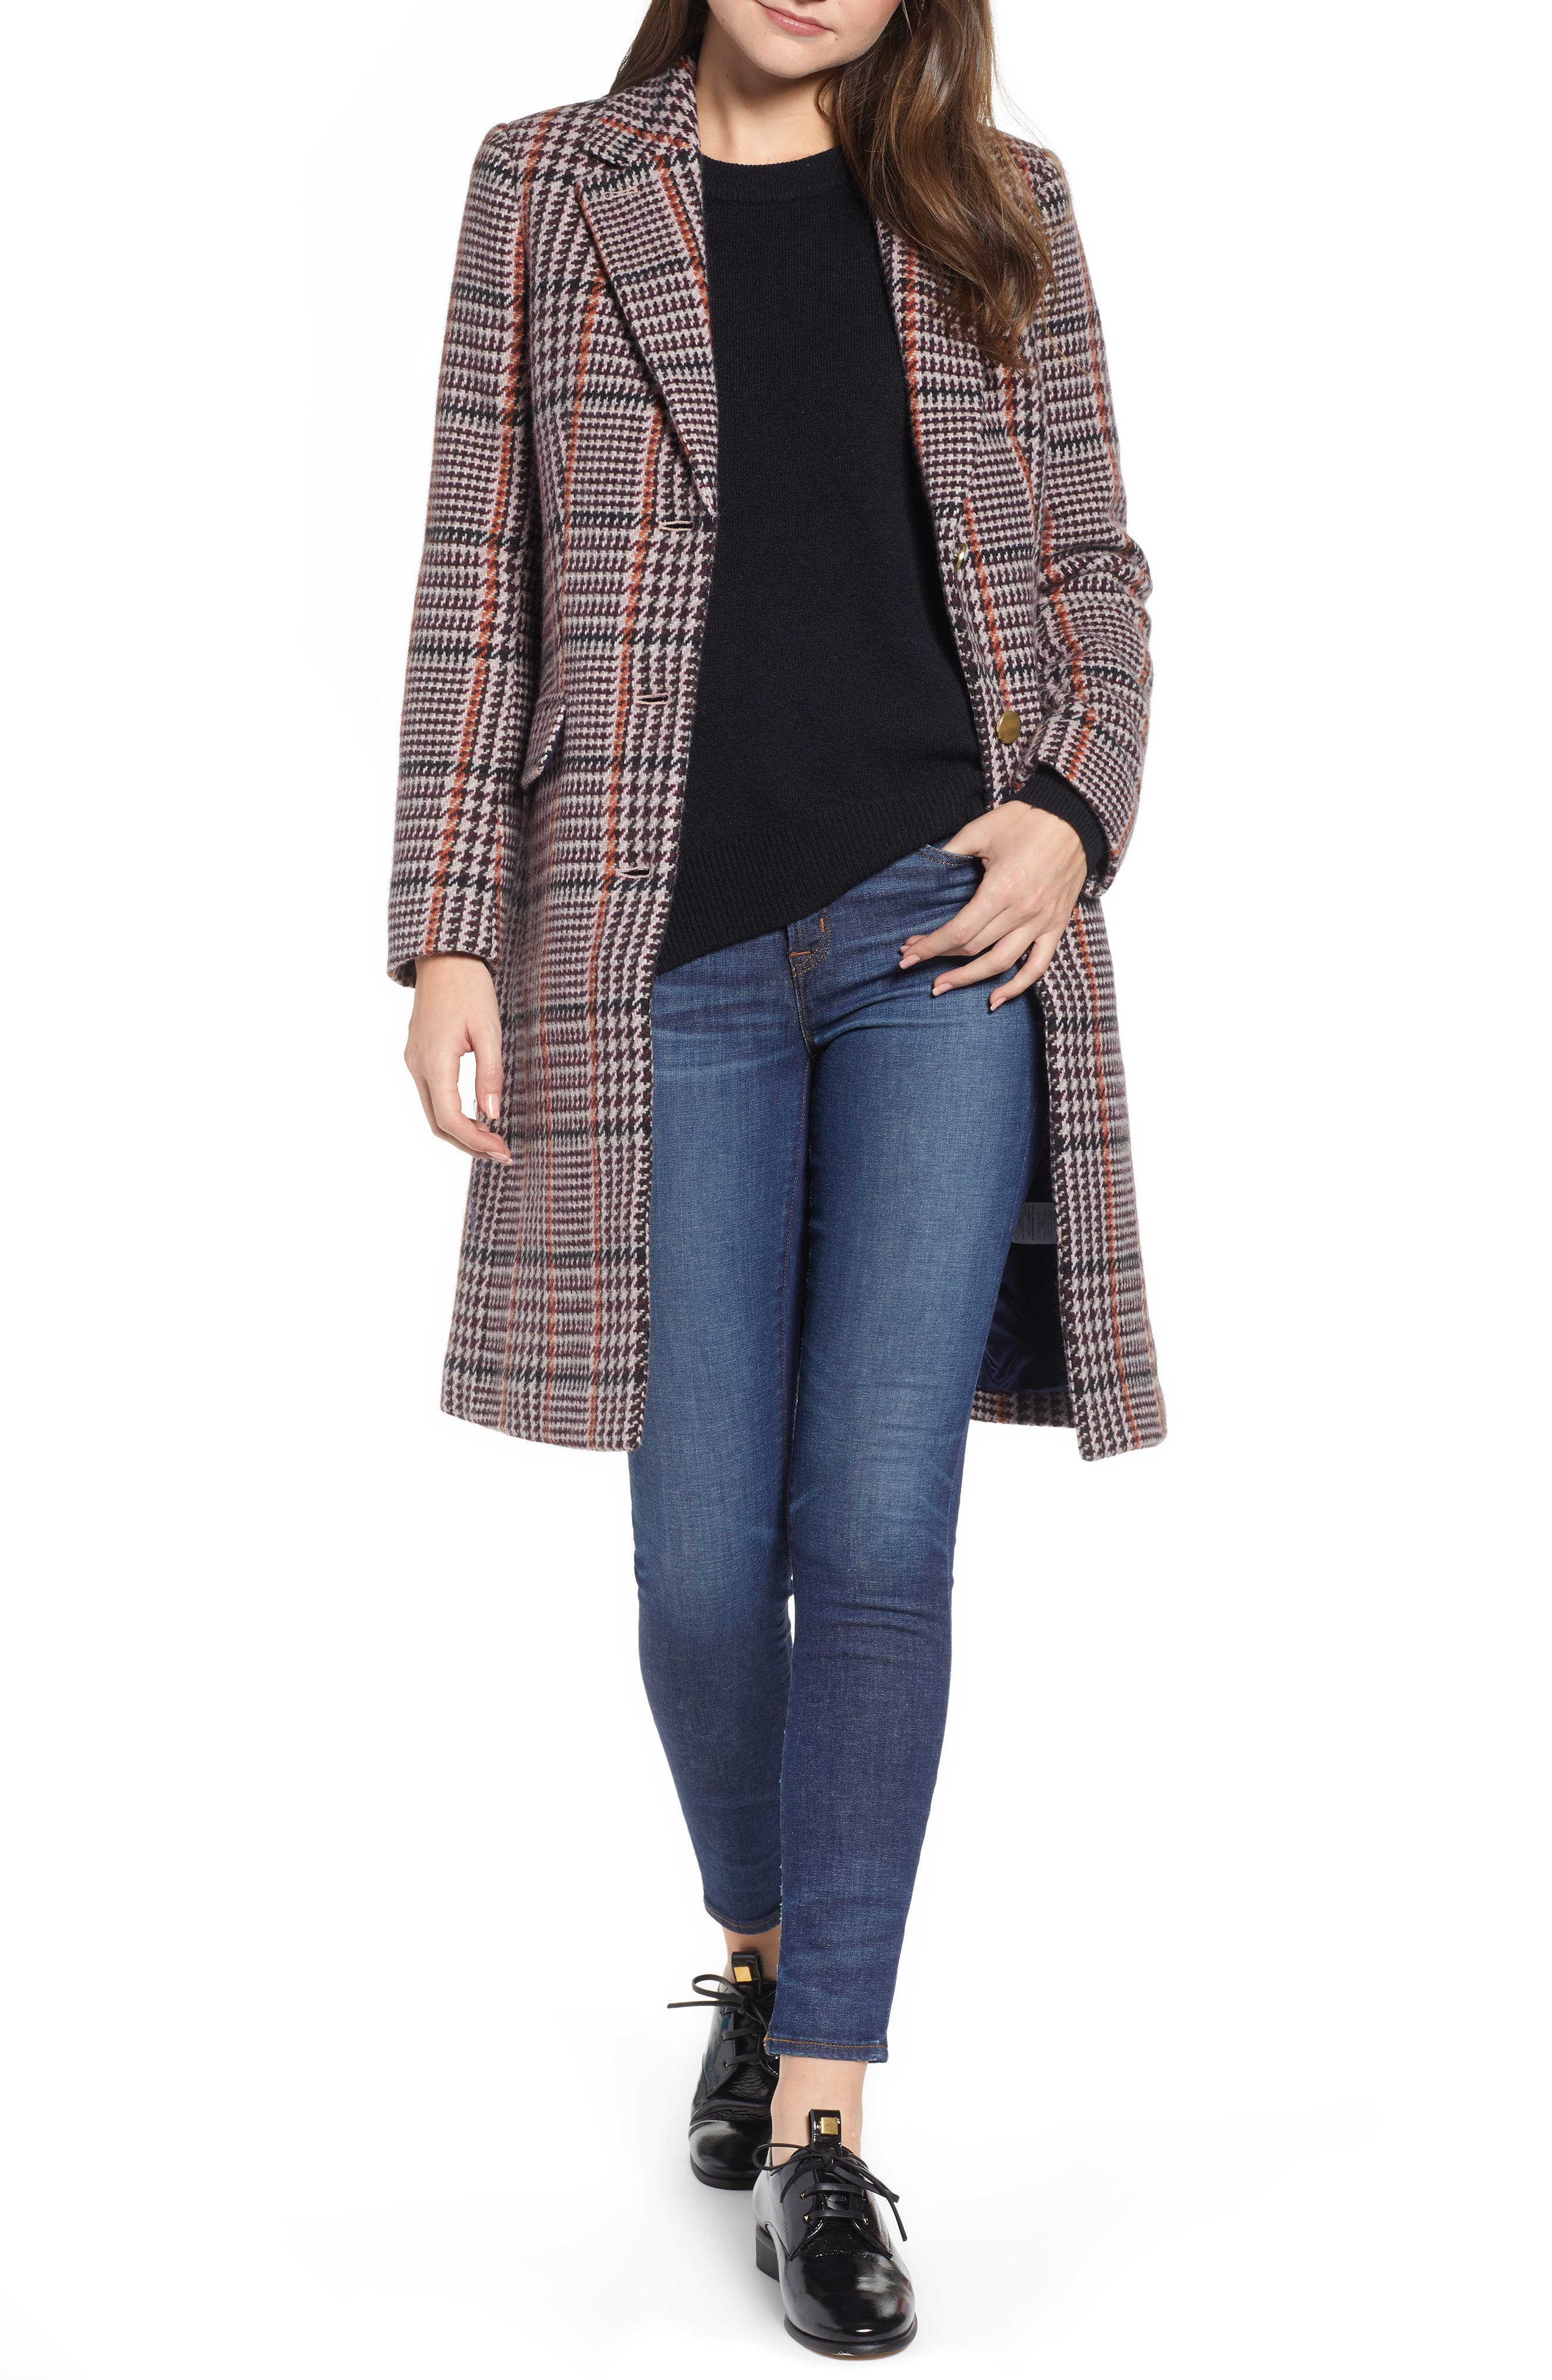 J.CREW, Plaid Single Breasted Topcoat, Main thumbnail 1, color, 600